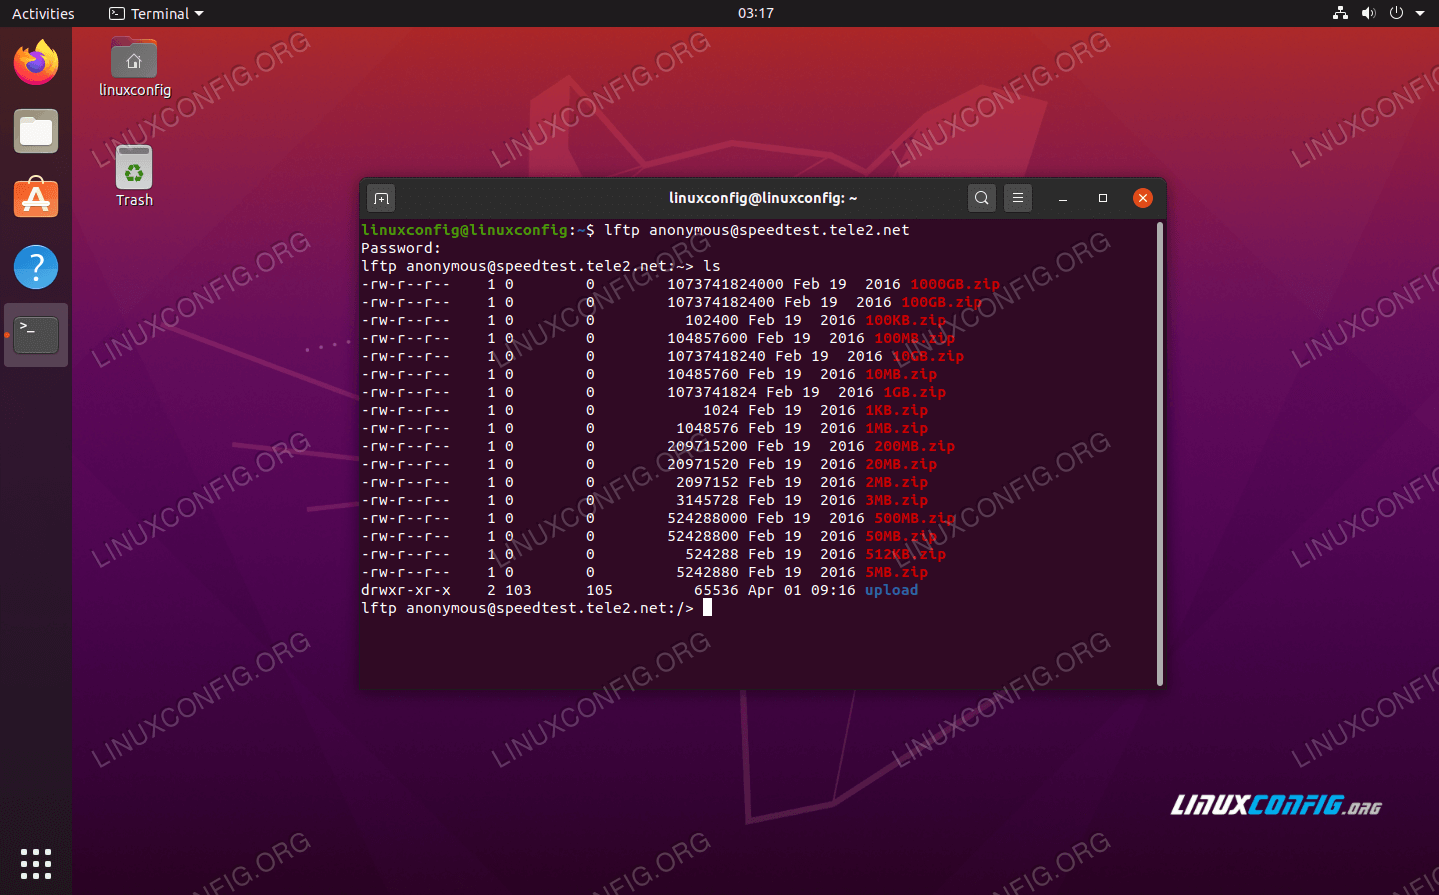 Connected with LFTP on Ubuntu 20.04